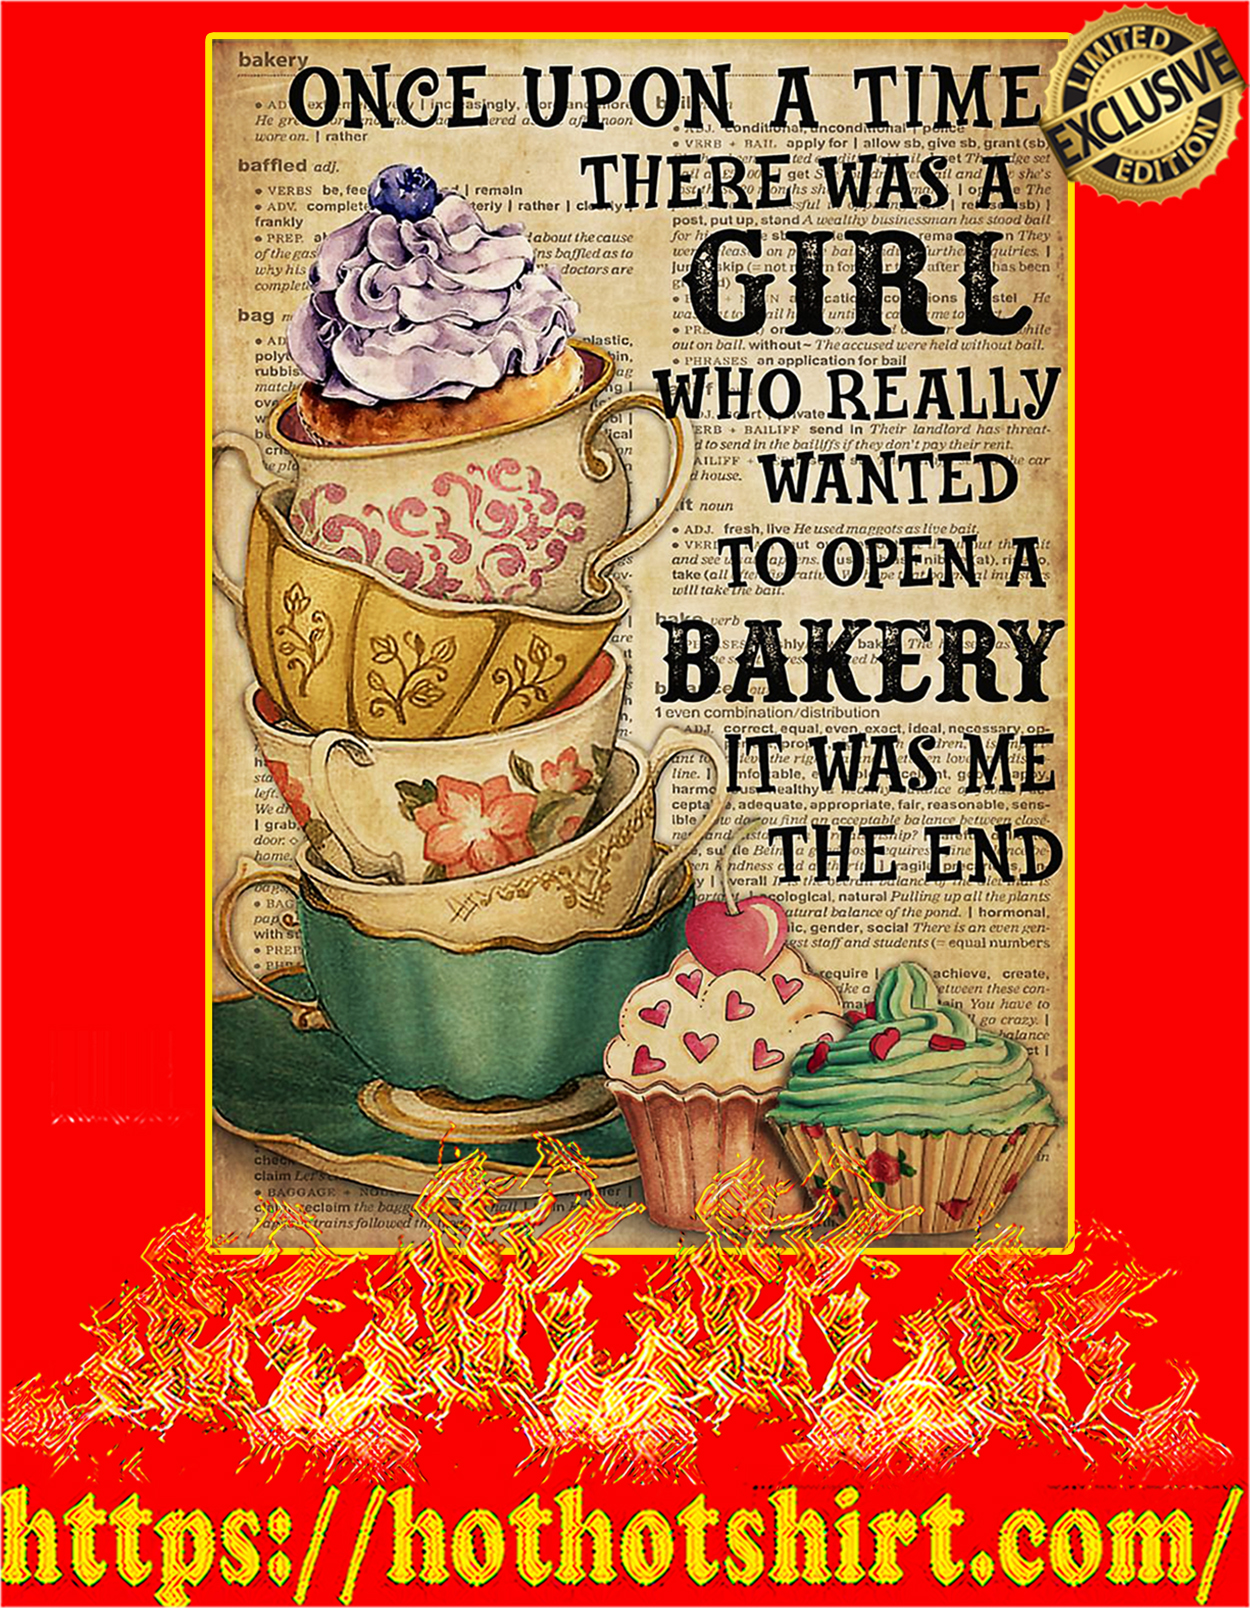 There was a girl who really wanted to open a bakery poster - A3